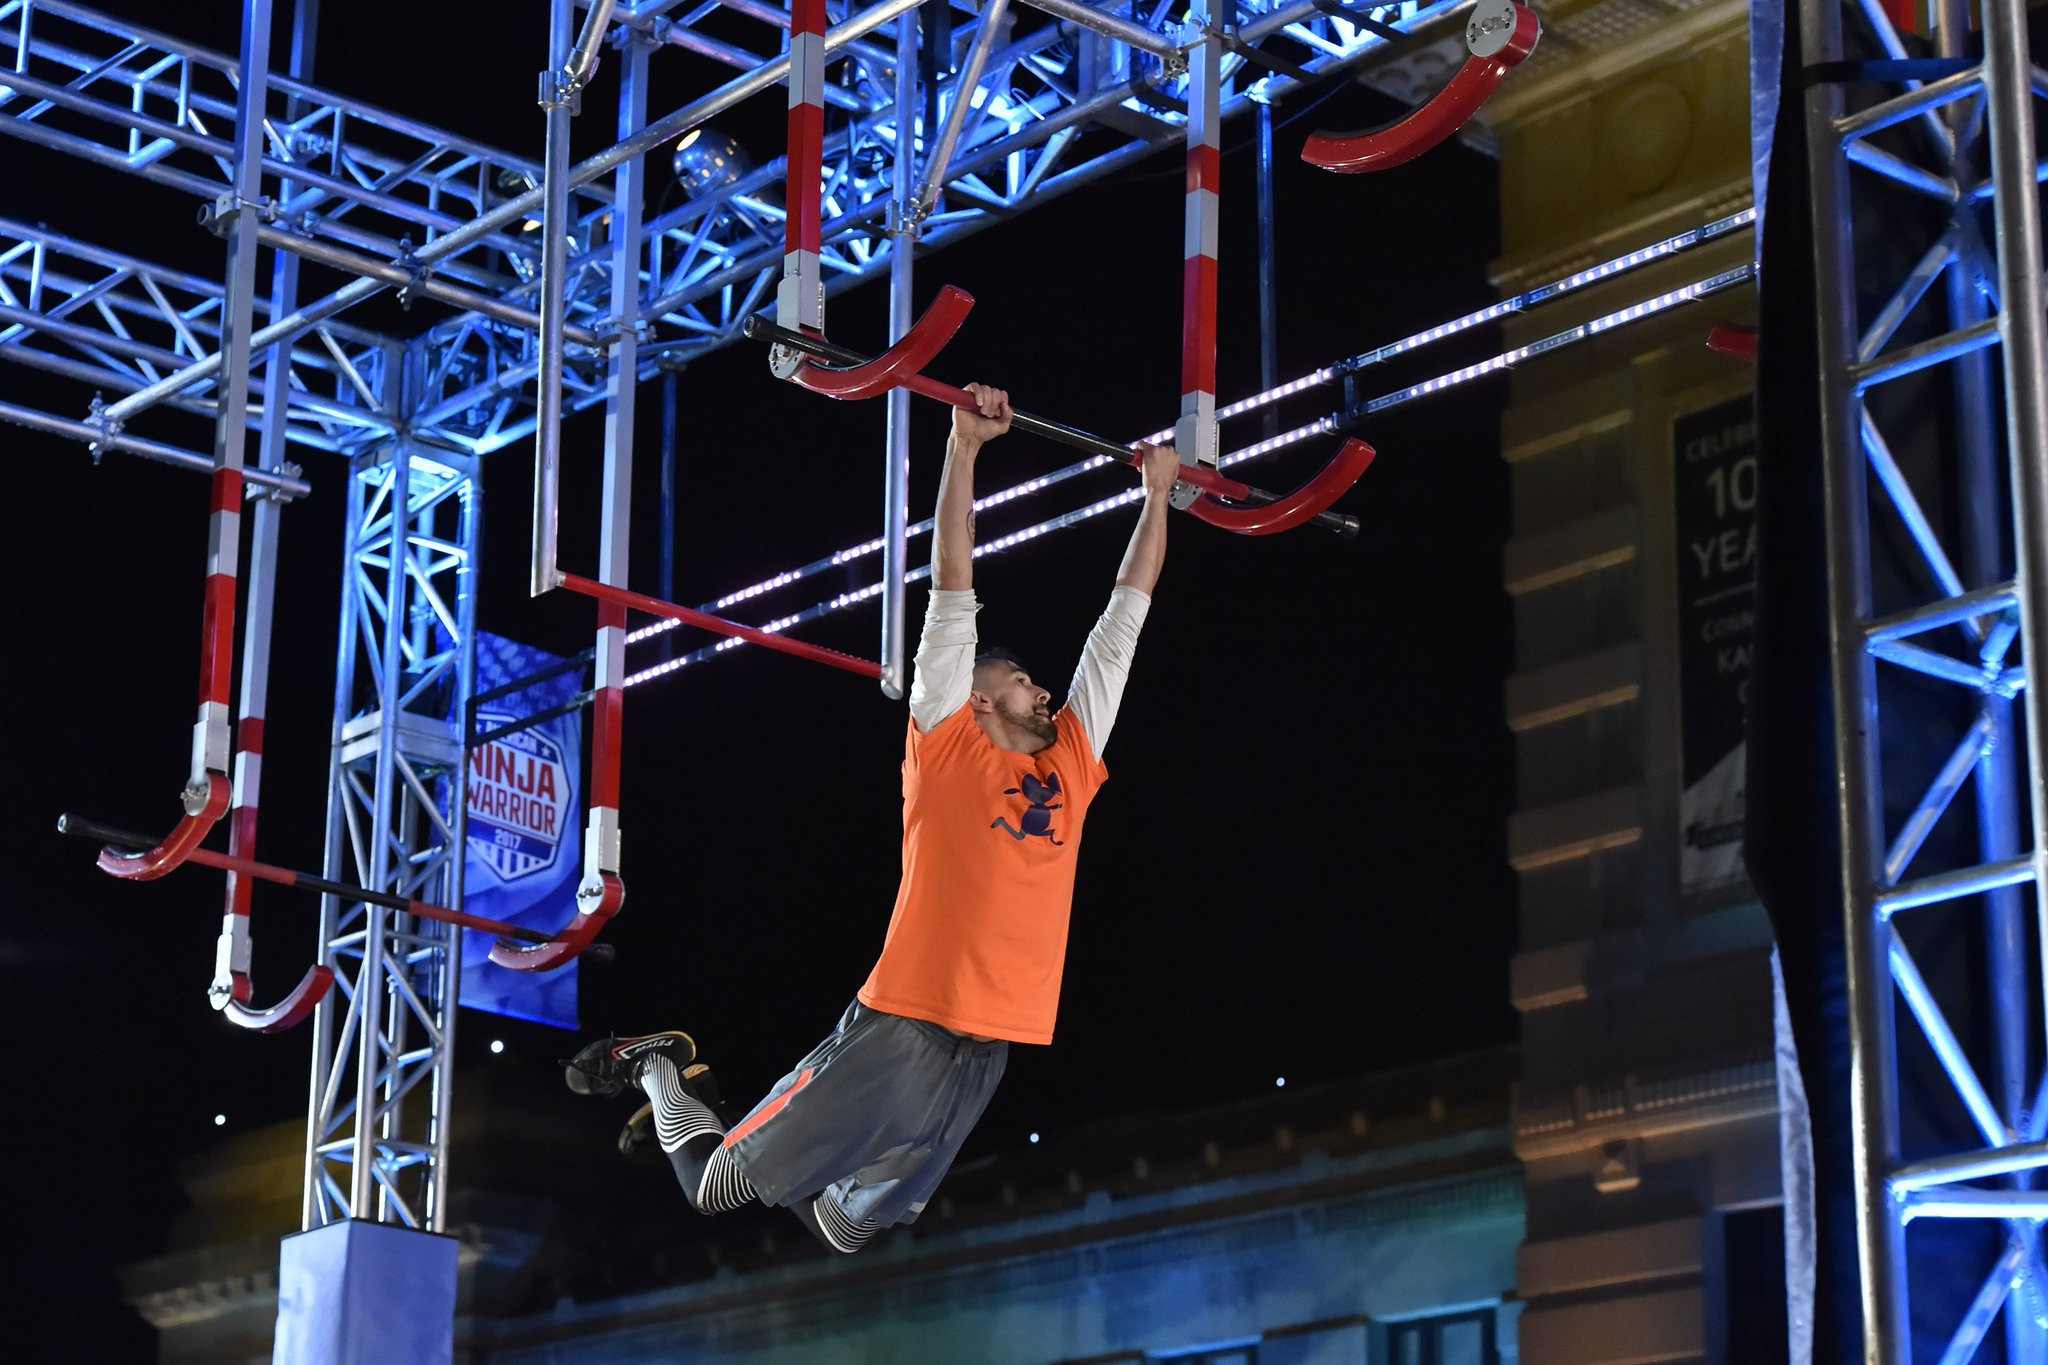 Did you see that?! This Ninja is on fire. #AmericanNinjaWarrior https://t.co/ELhE5yilHn